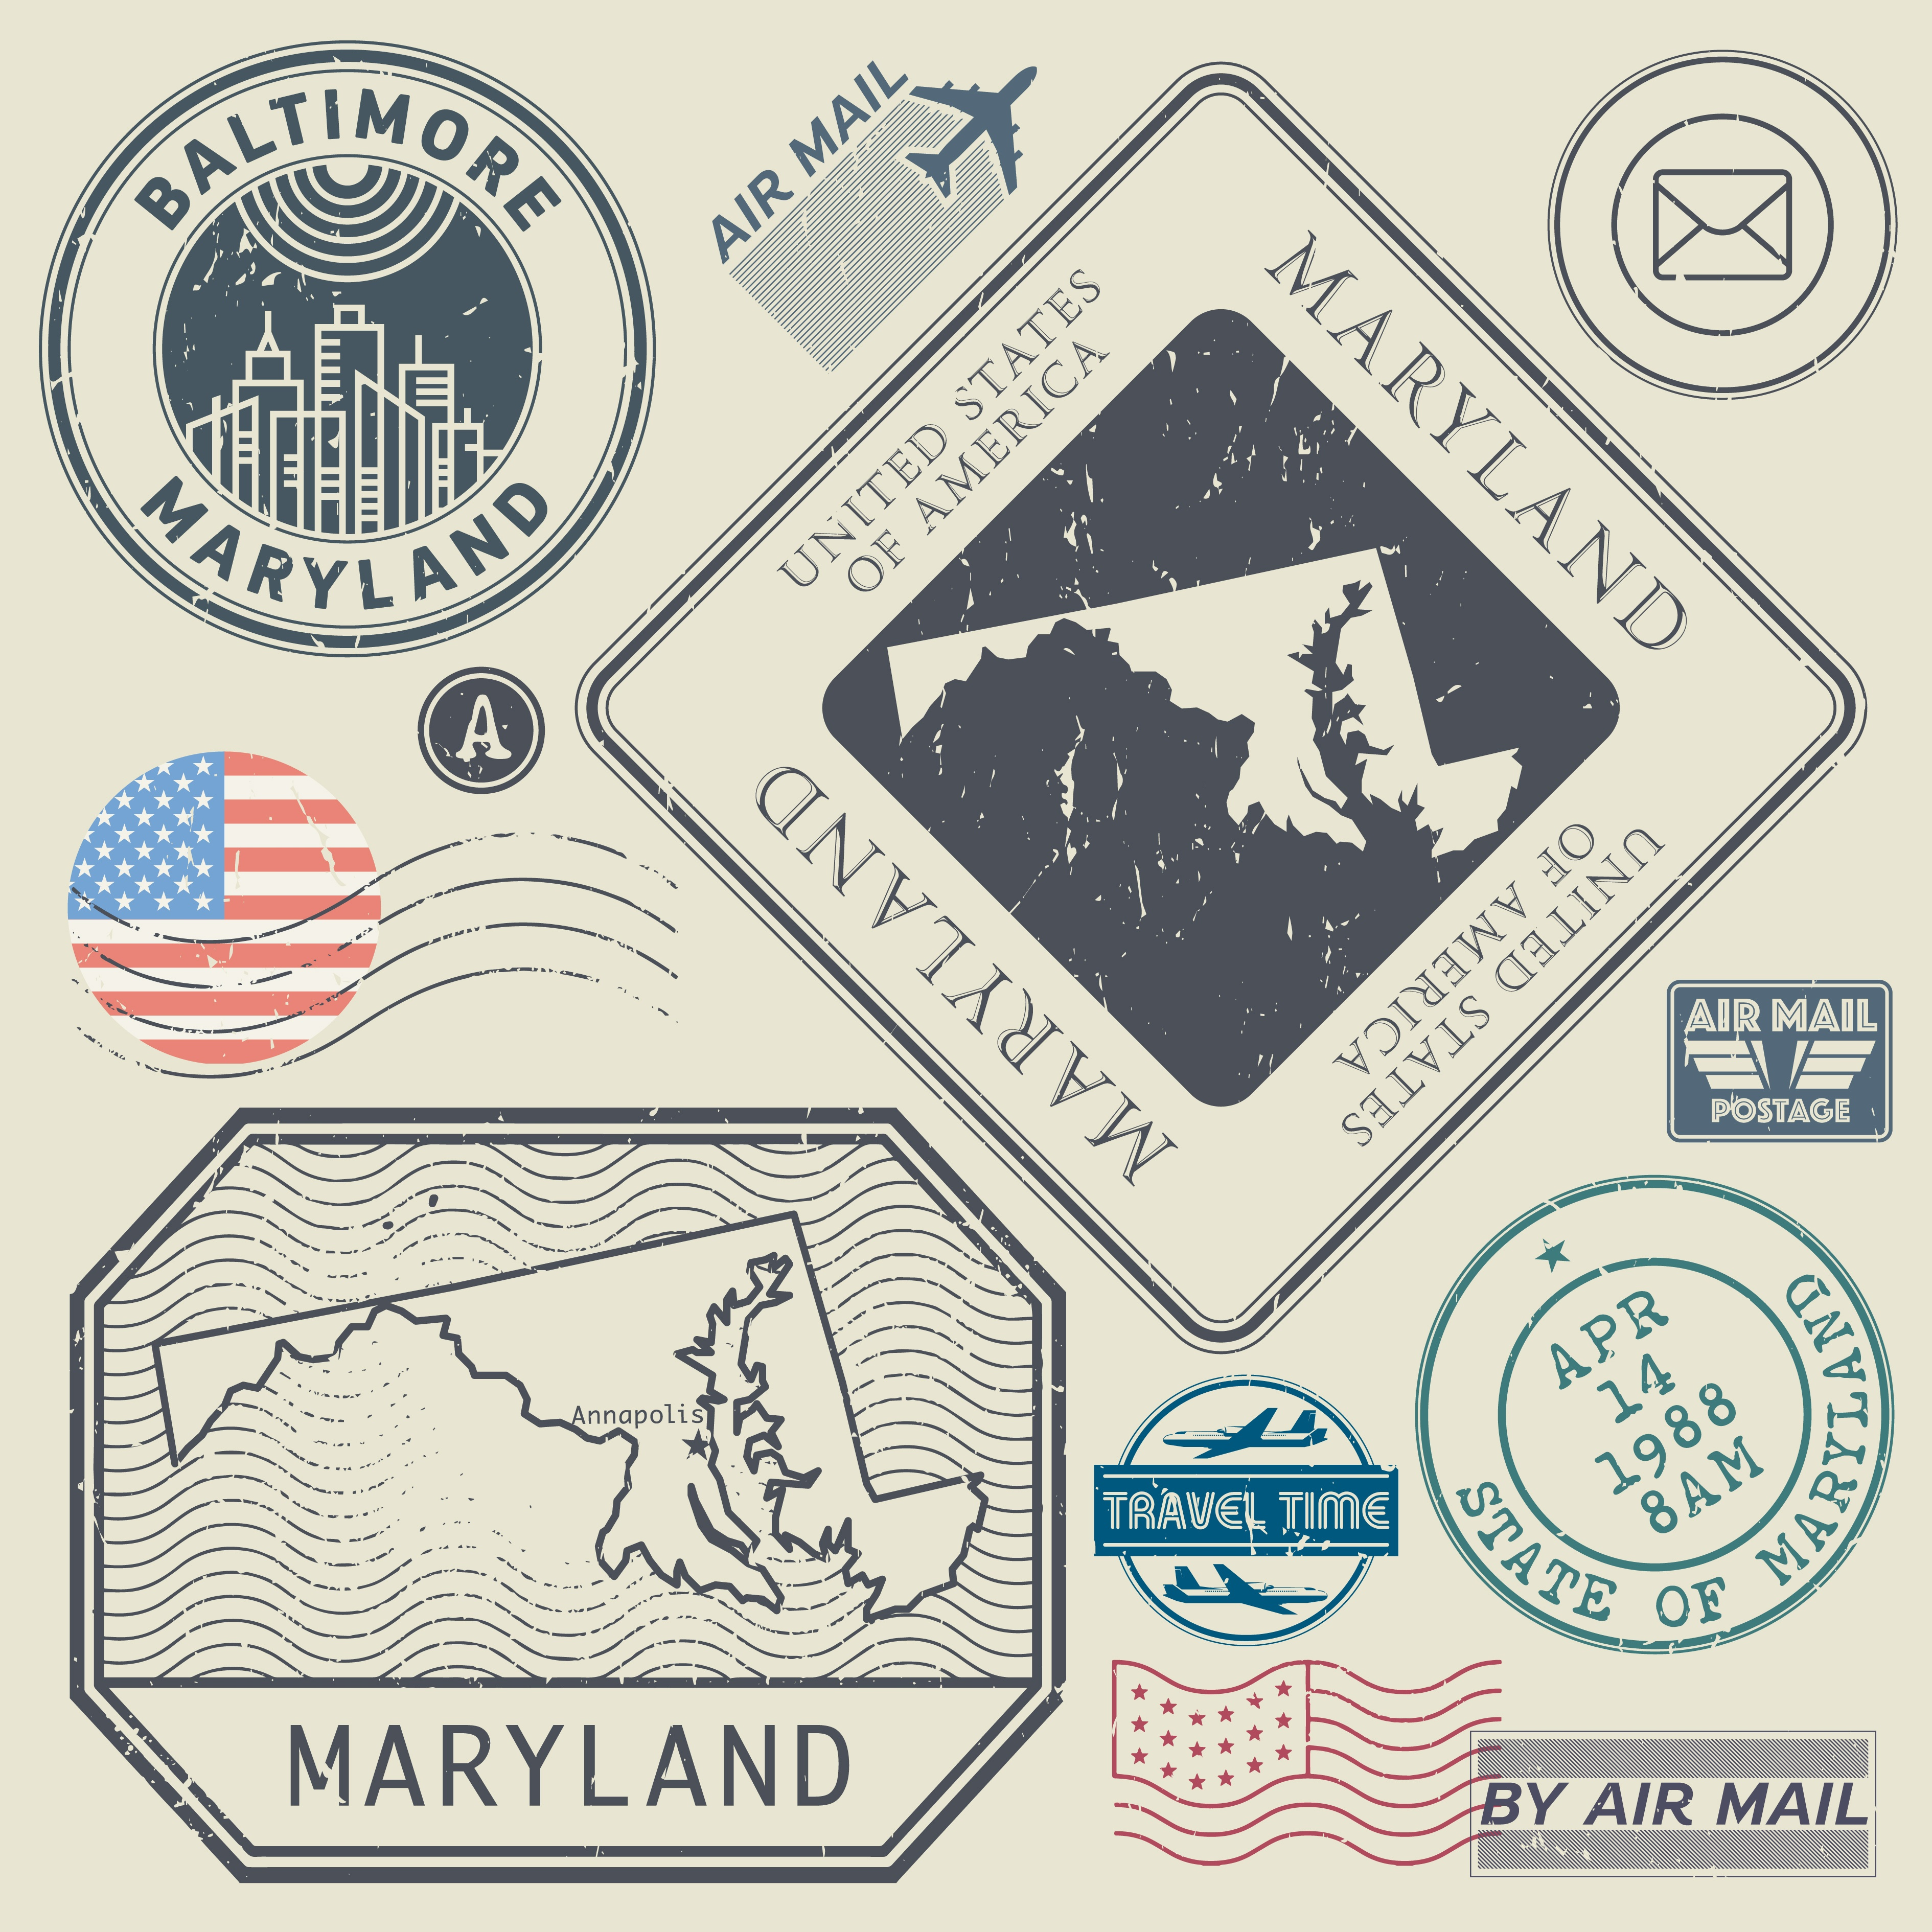 New Maryland Medical Cannabis Business Licensing Opportunity